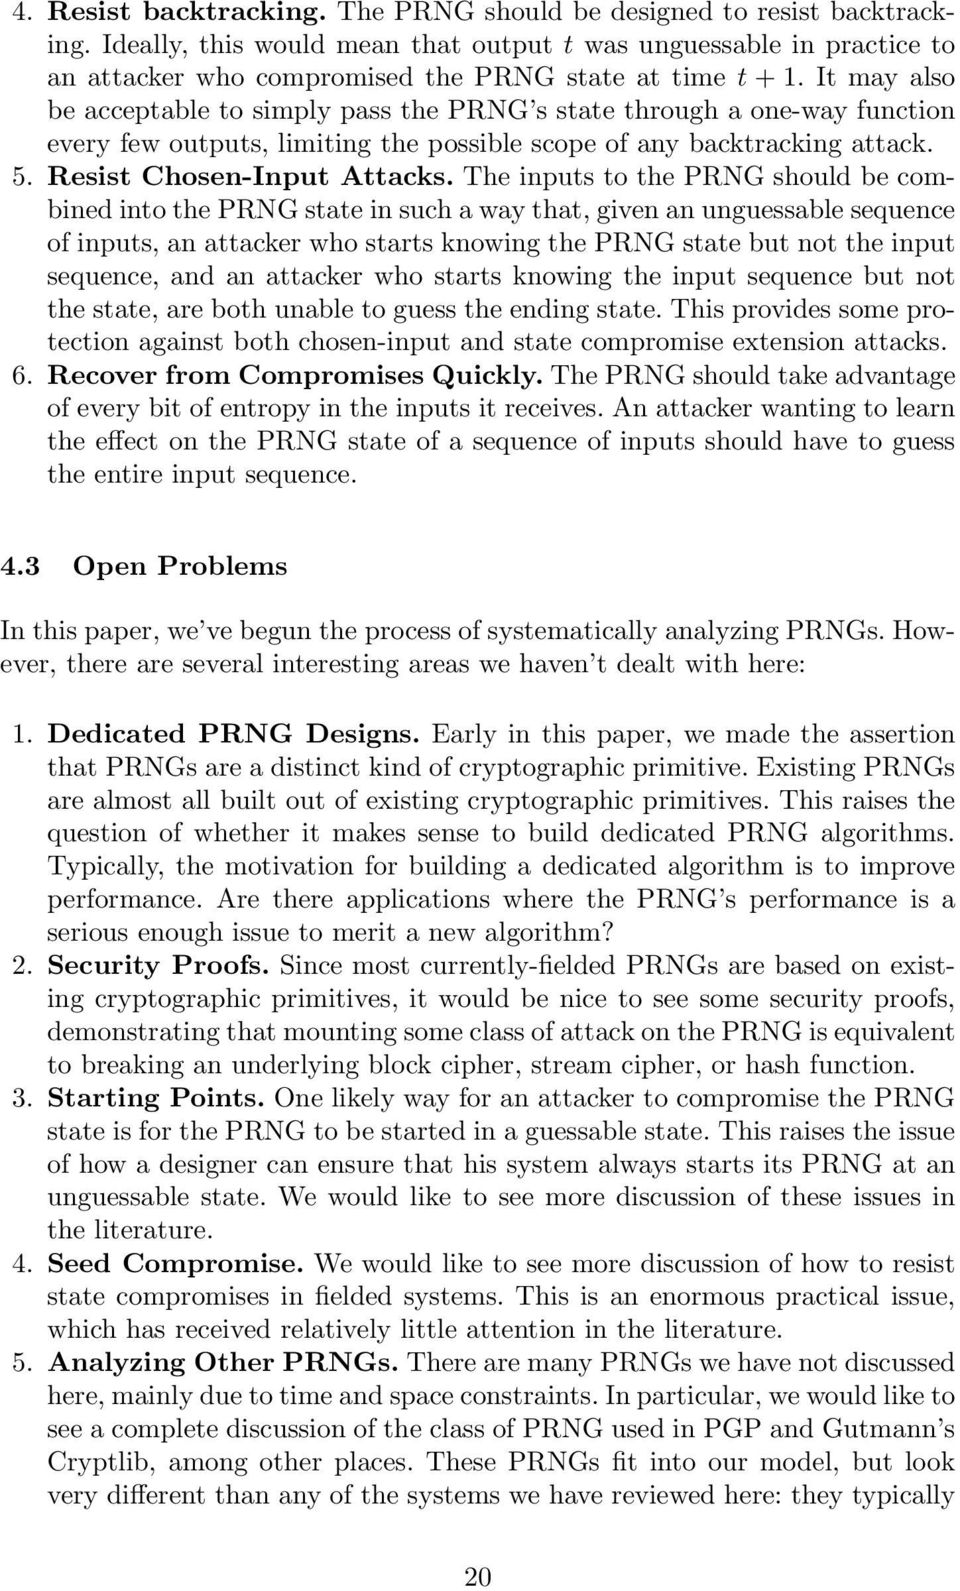 It may also be acceptable to simply pass the PRNG s state through a one-way function every few outputs, limiting the possible scope of any backtracking attack. 5. Resist Chosen-Input Attacks.